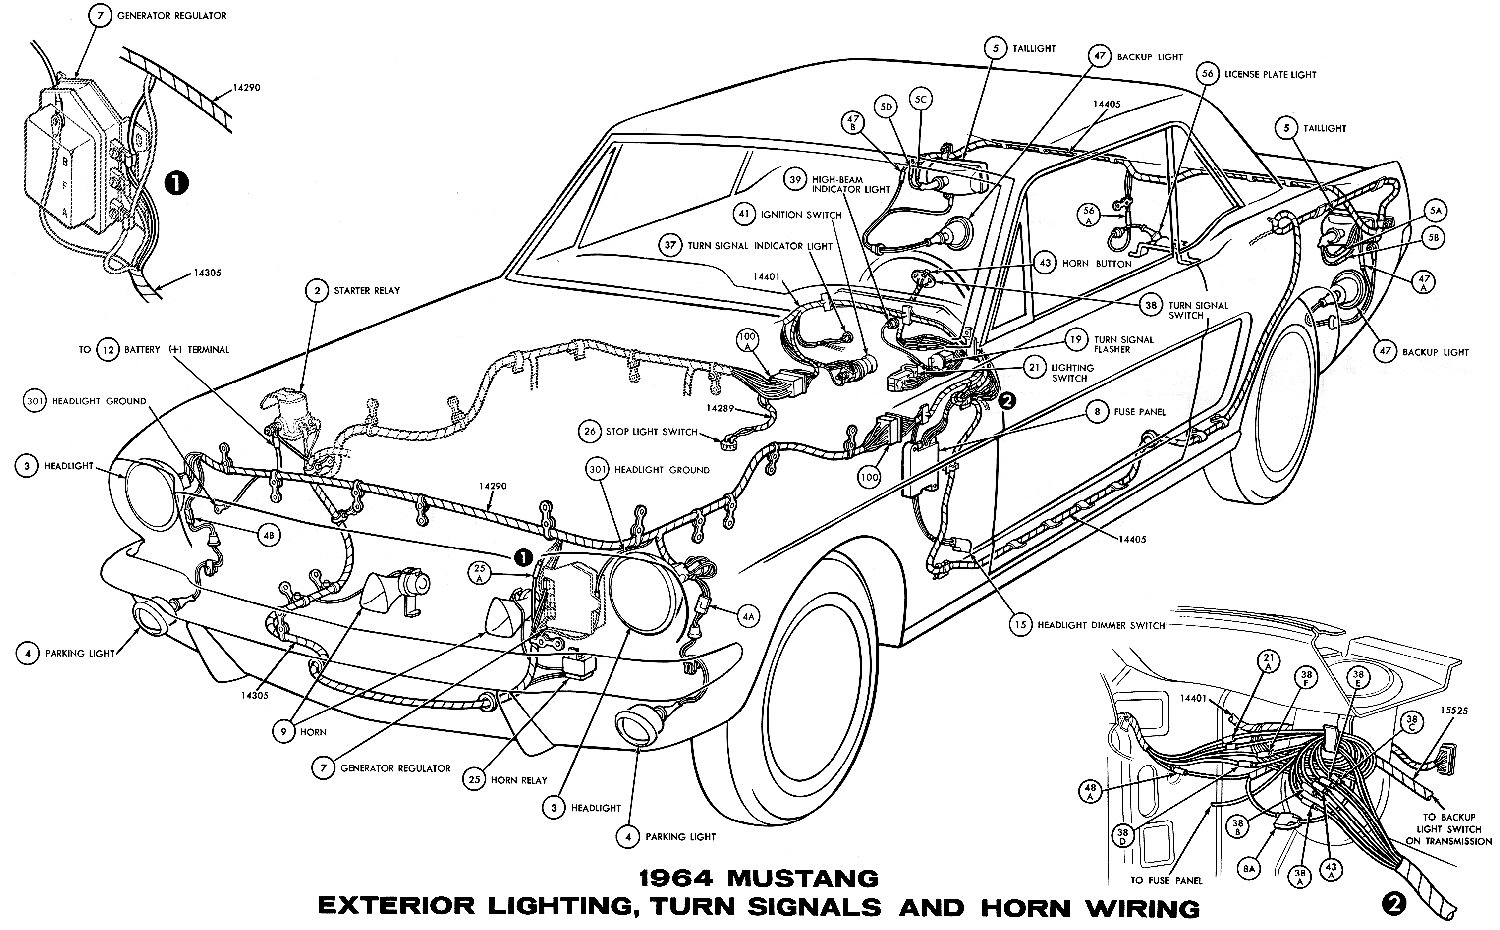 1964h 1964 mustang wiring diagrams average joe restoration 1969 mustang voltage regulator wiring diagram at mifinder.co